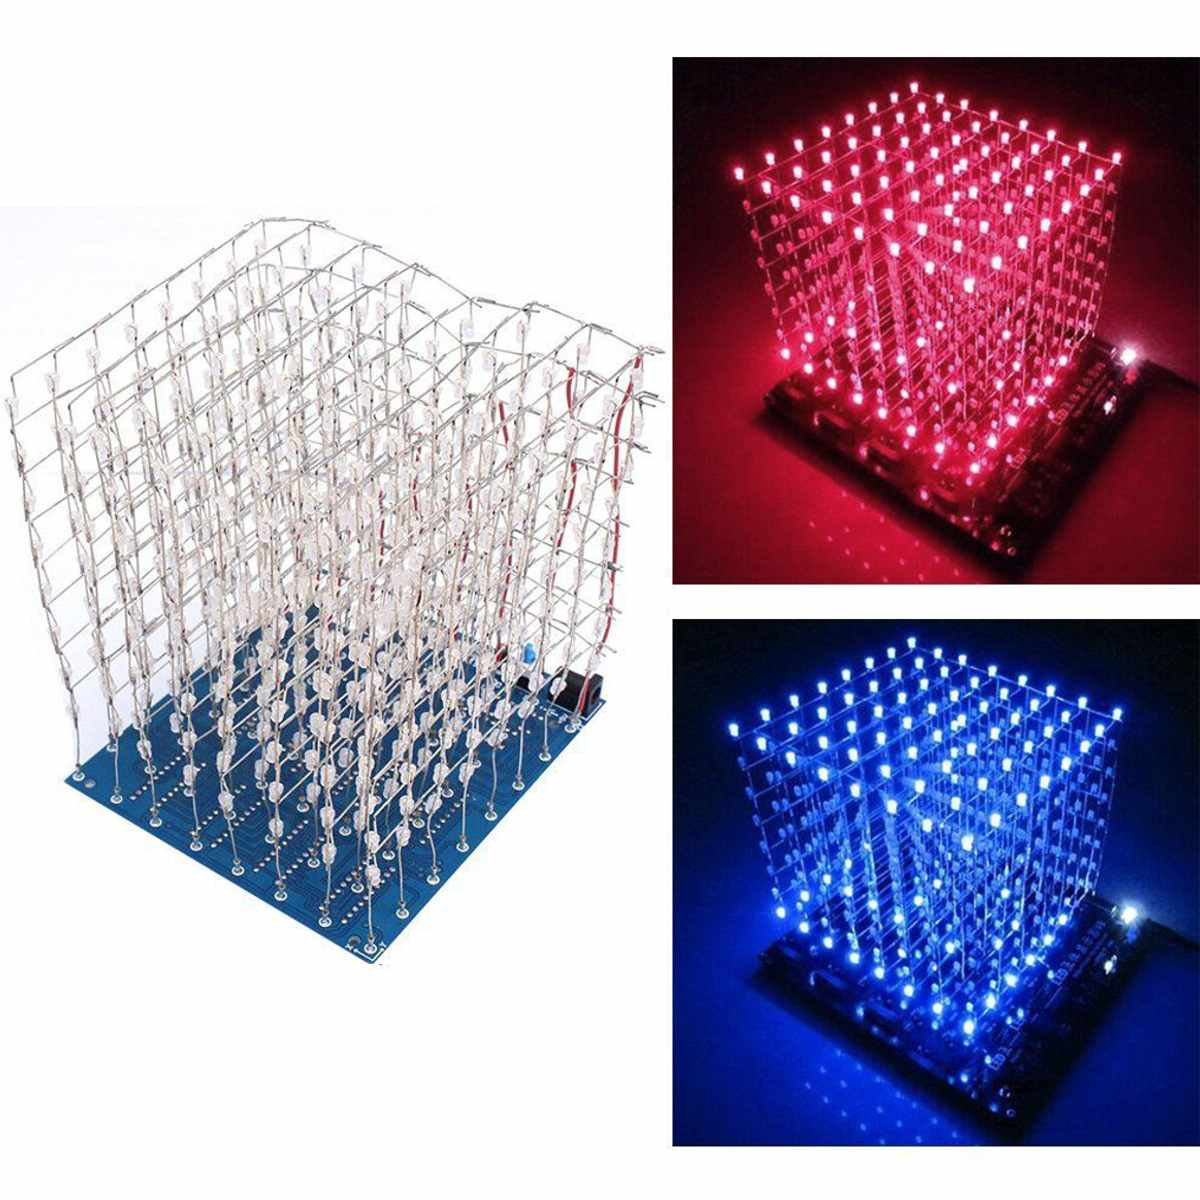 Leory Eiffel Tower Diy 3d Led Light Cube Kit 5v Led Music Spectrum Diy Electronic Kit For Dac Mp3 For Diy Welding Enthusiast Soft And Light Audio & Video Replacement Parts